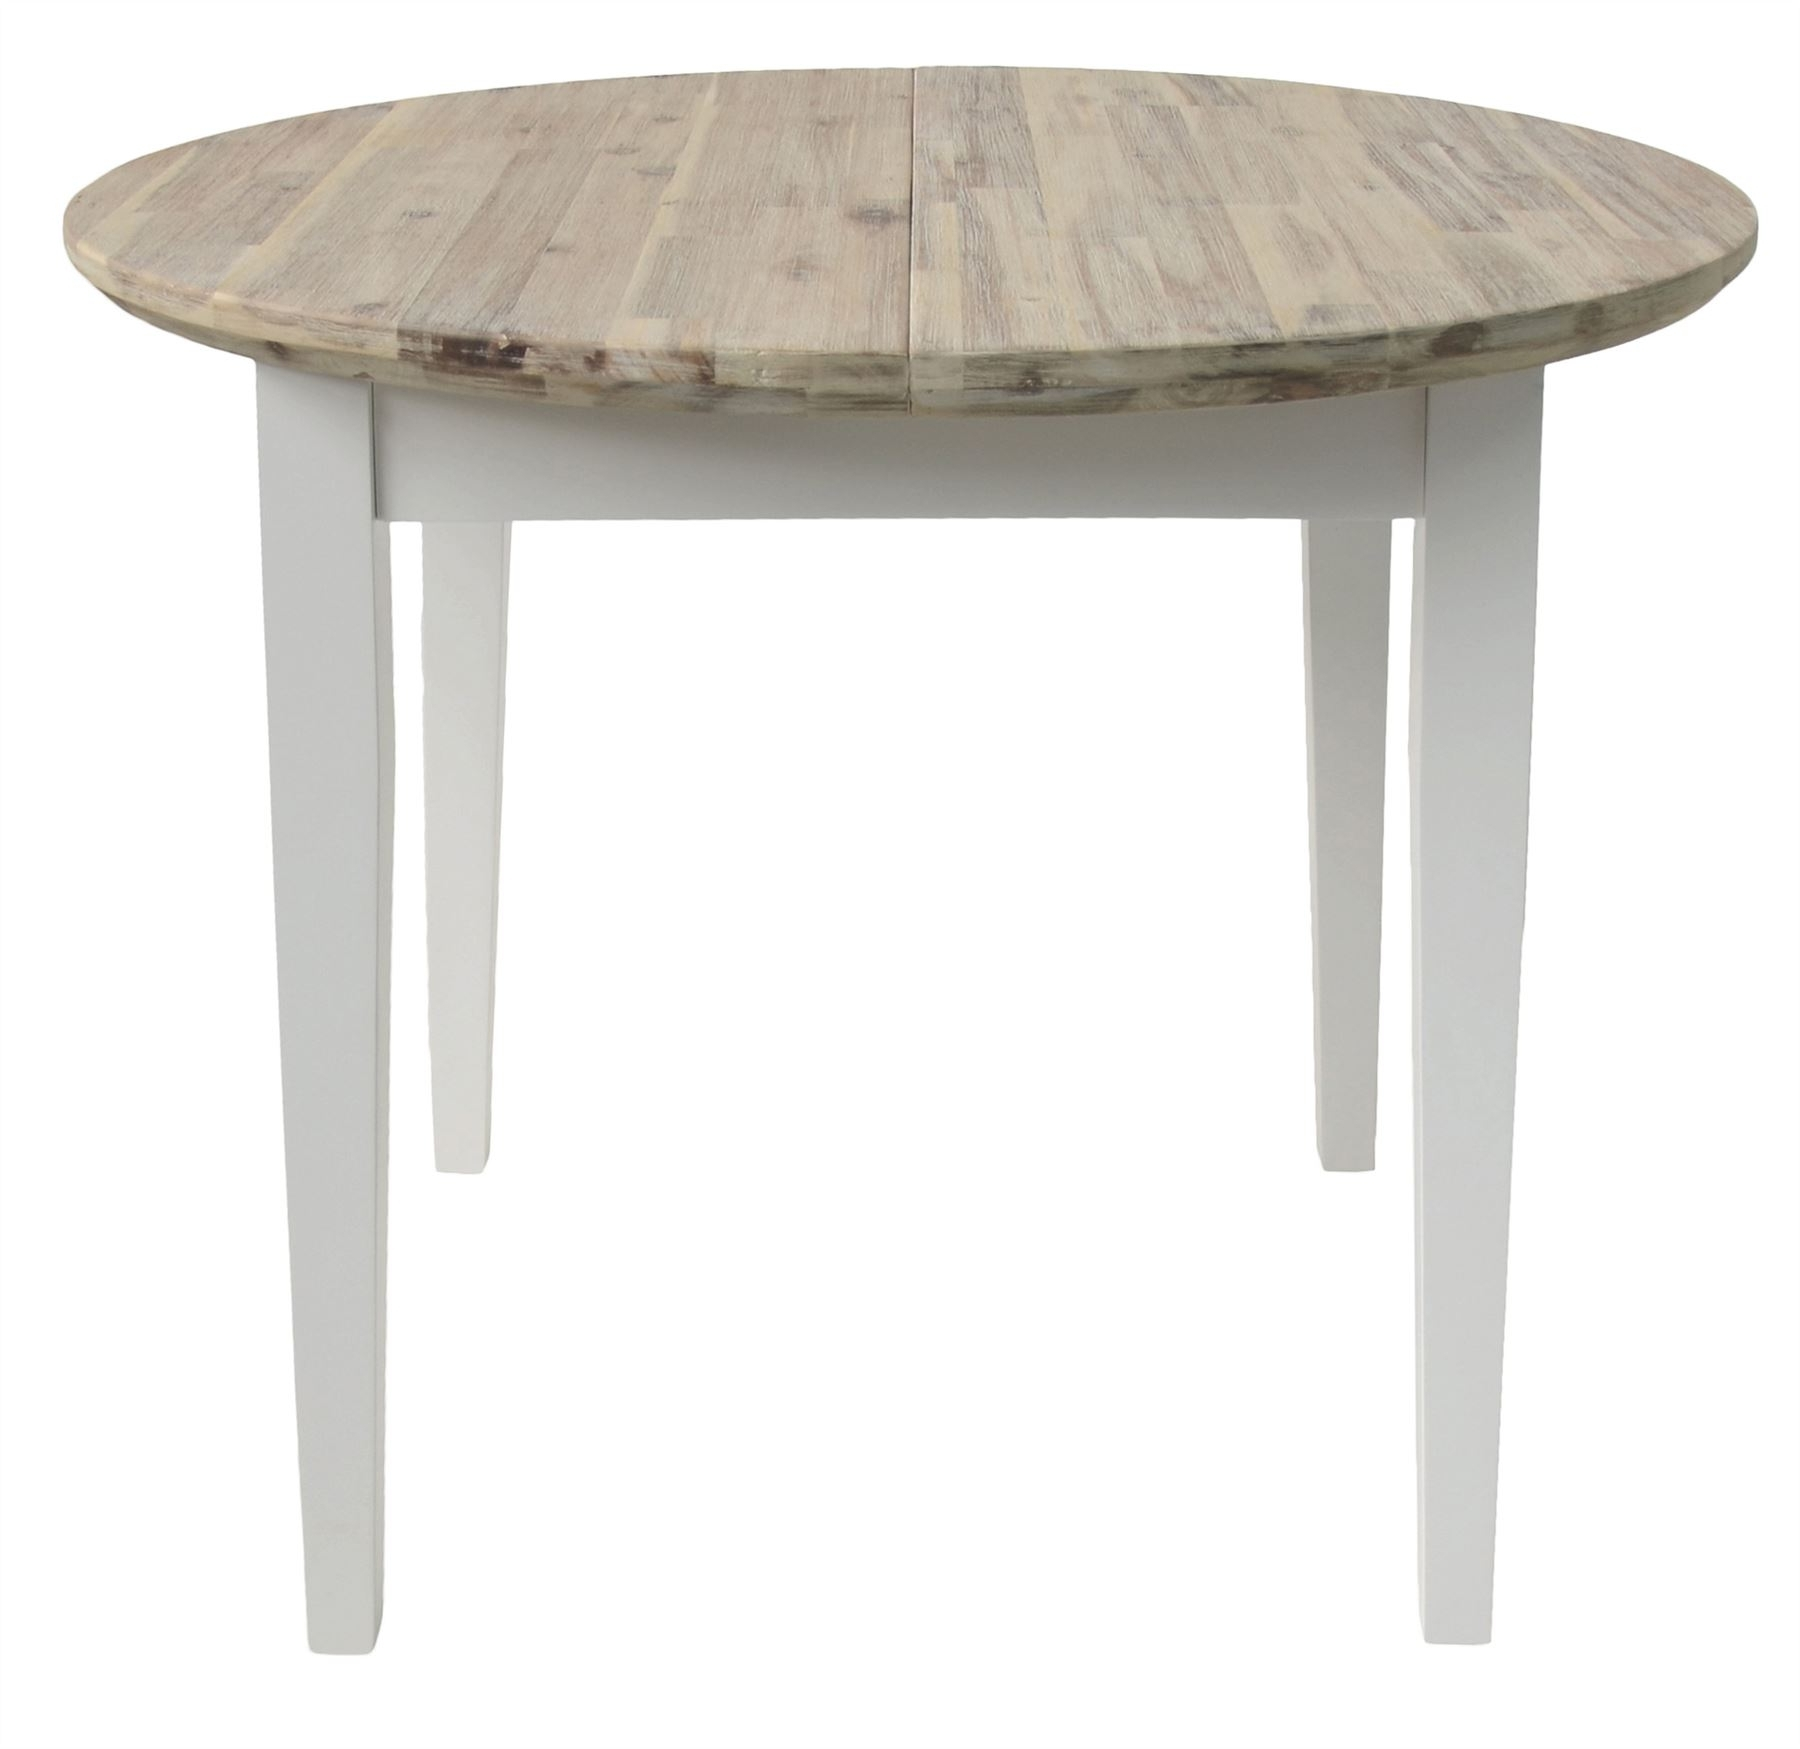 Recent Florence Round Extending Table 92 117Cm, Kitchen Dining Table Inside Extended Round Dining Tables (View 19 of 25)